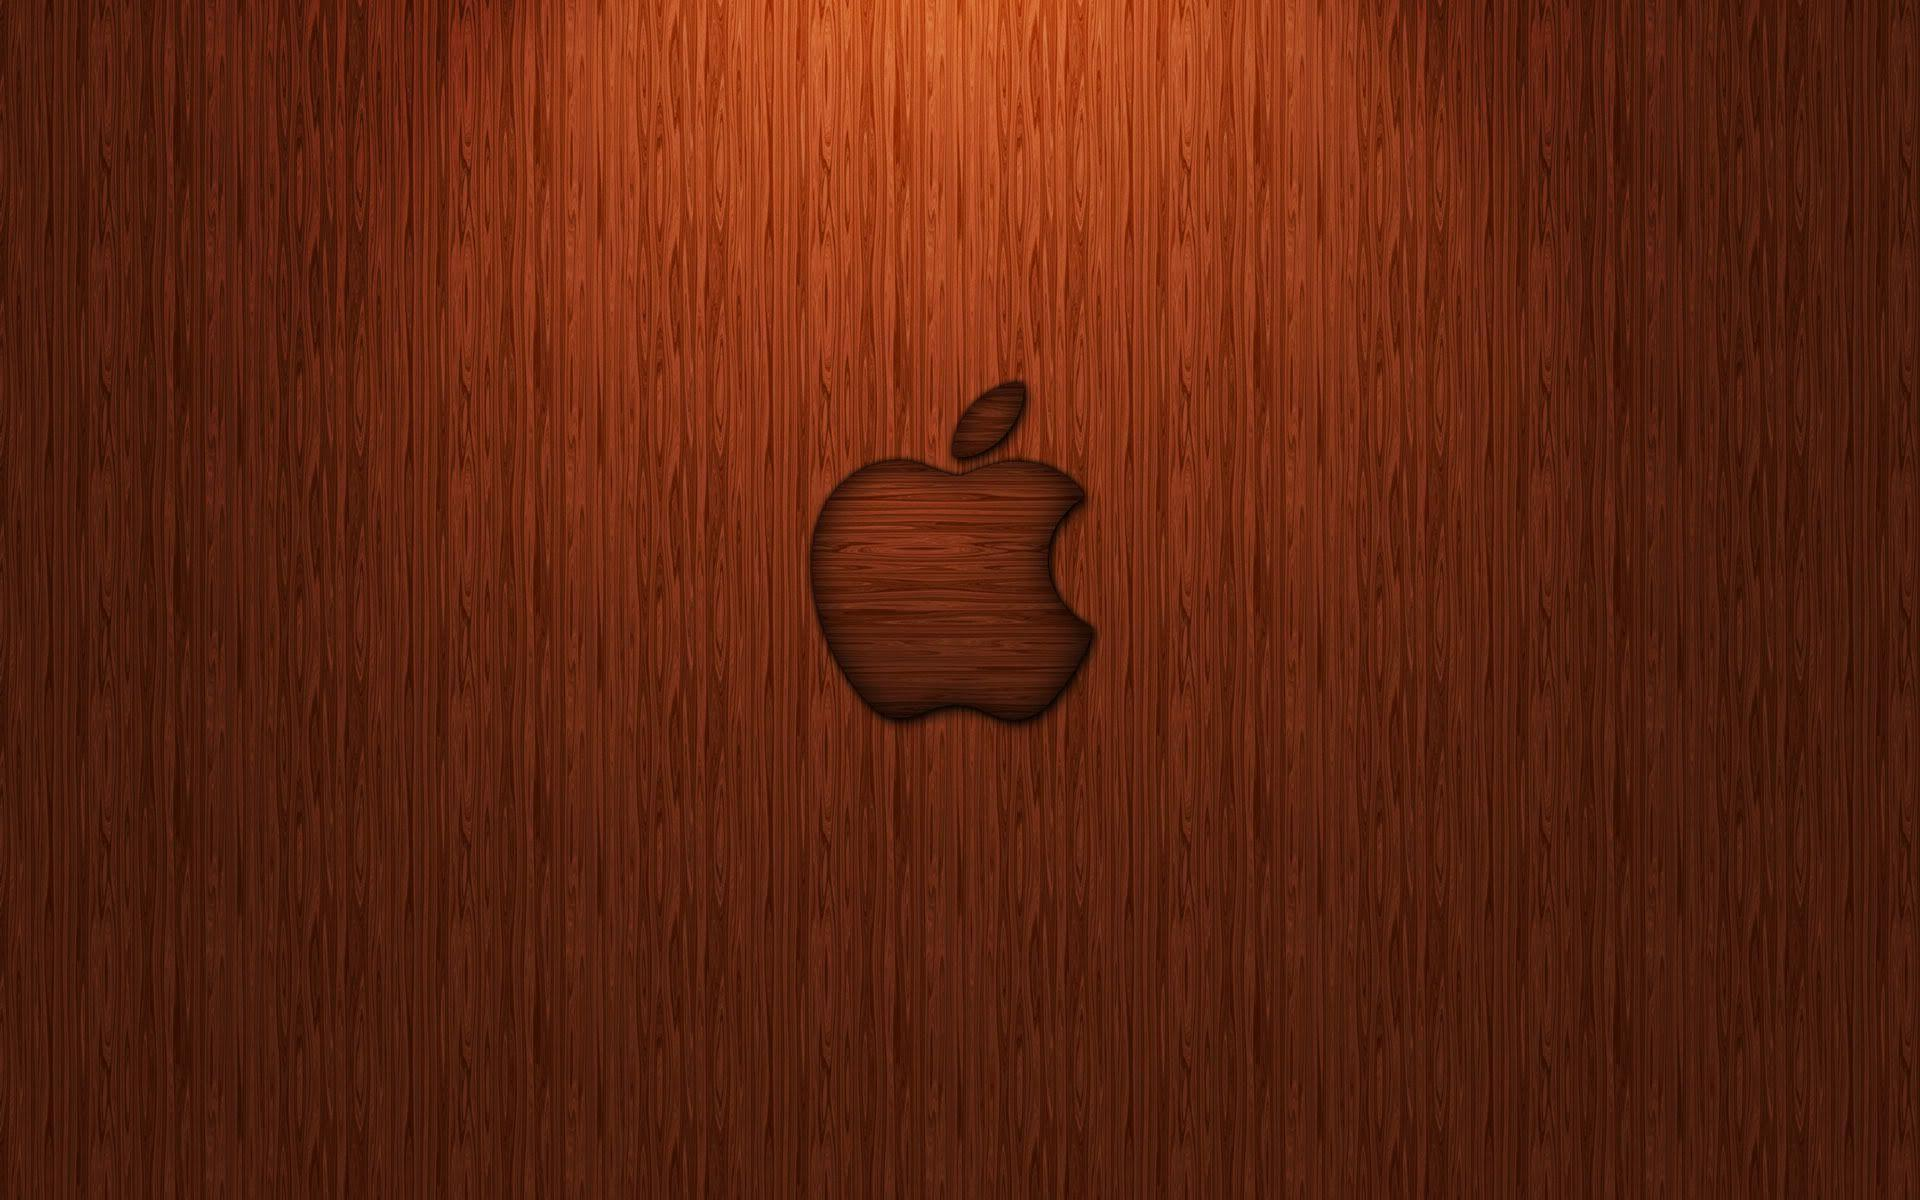 Cool Apple Logo Wallpaper - Viewing Gallery